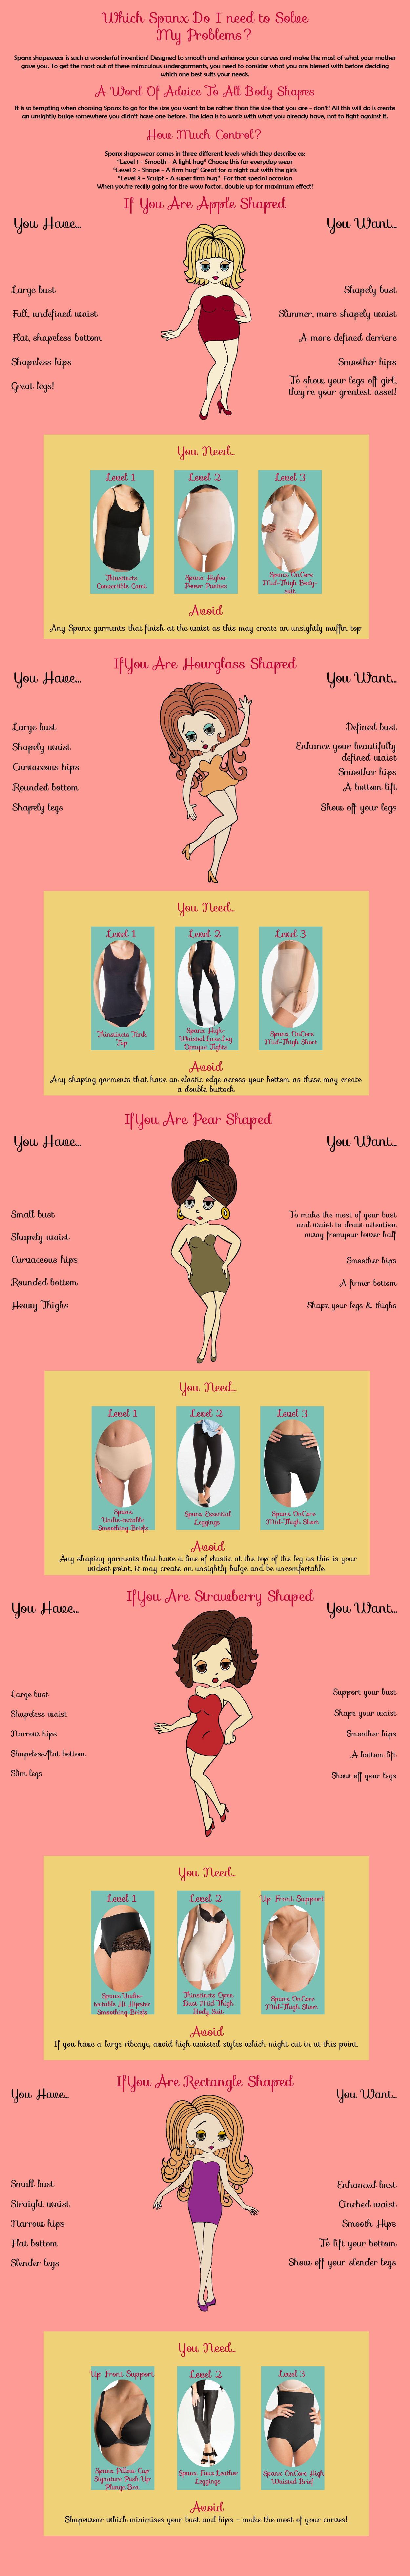 Spanx problem solving guide